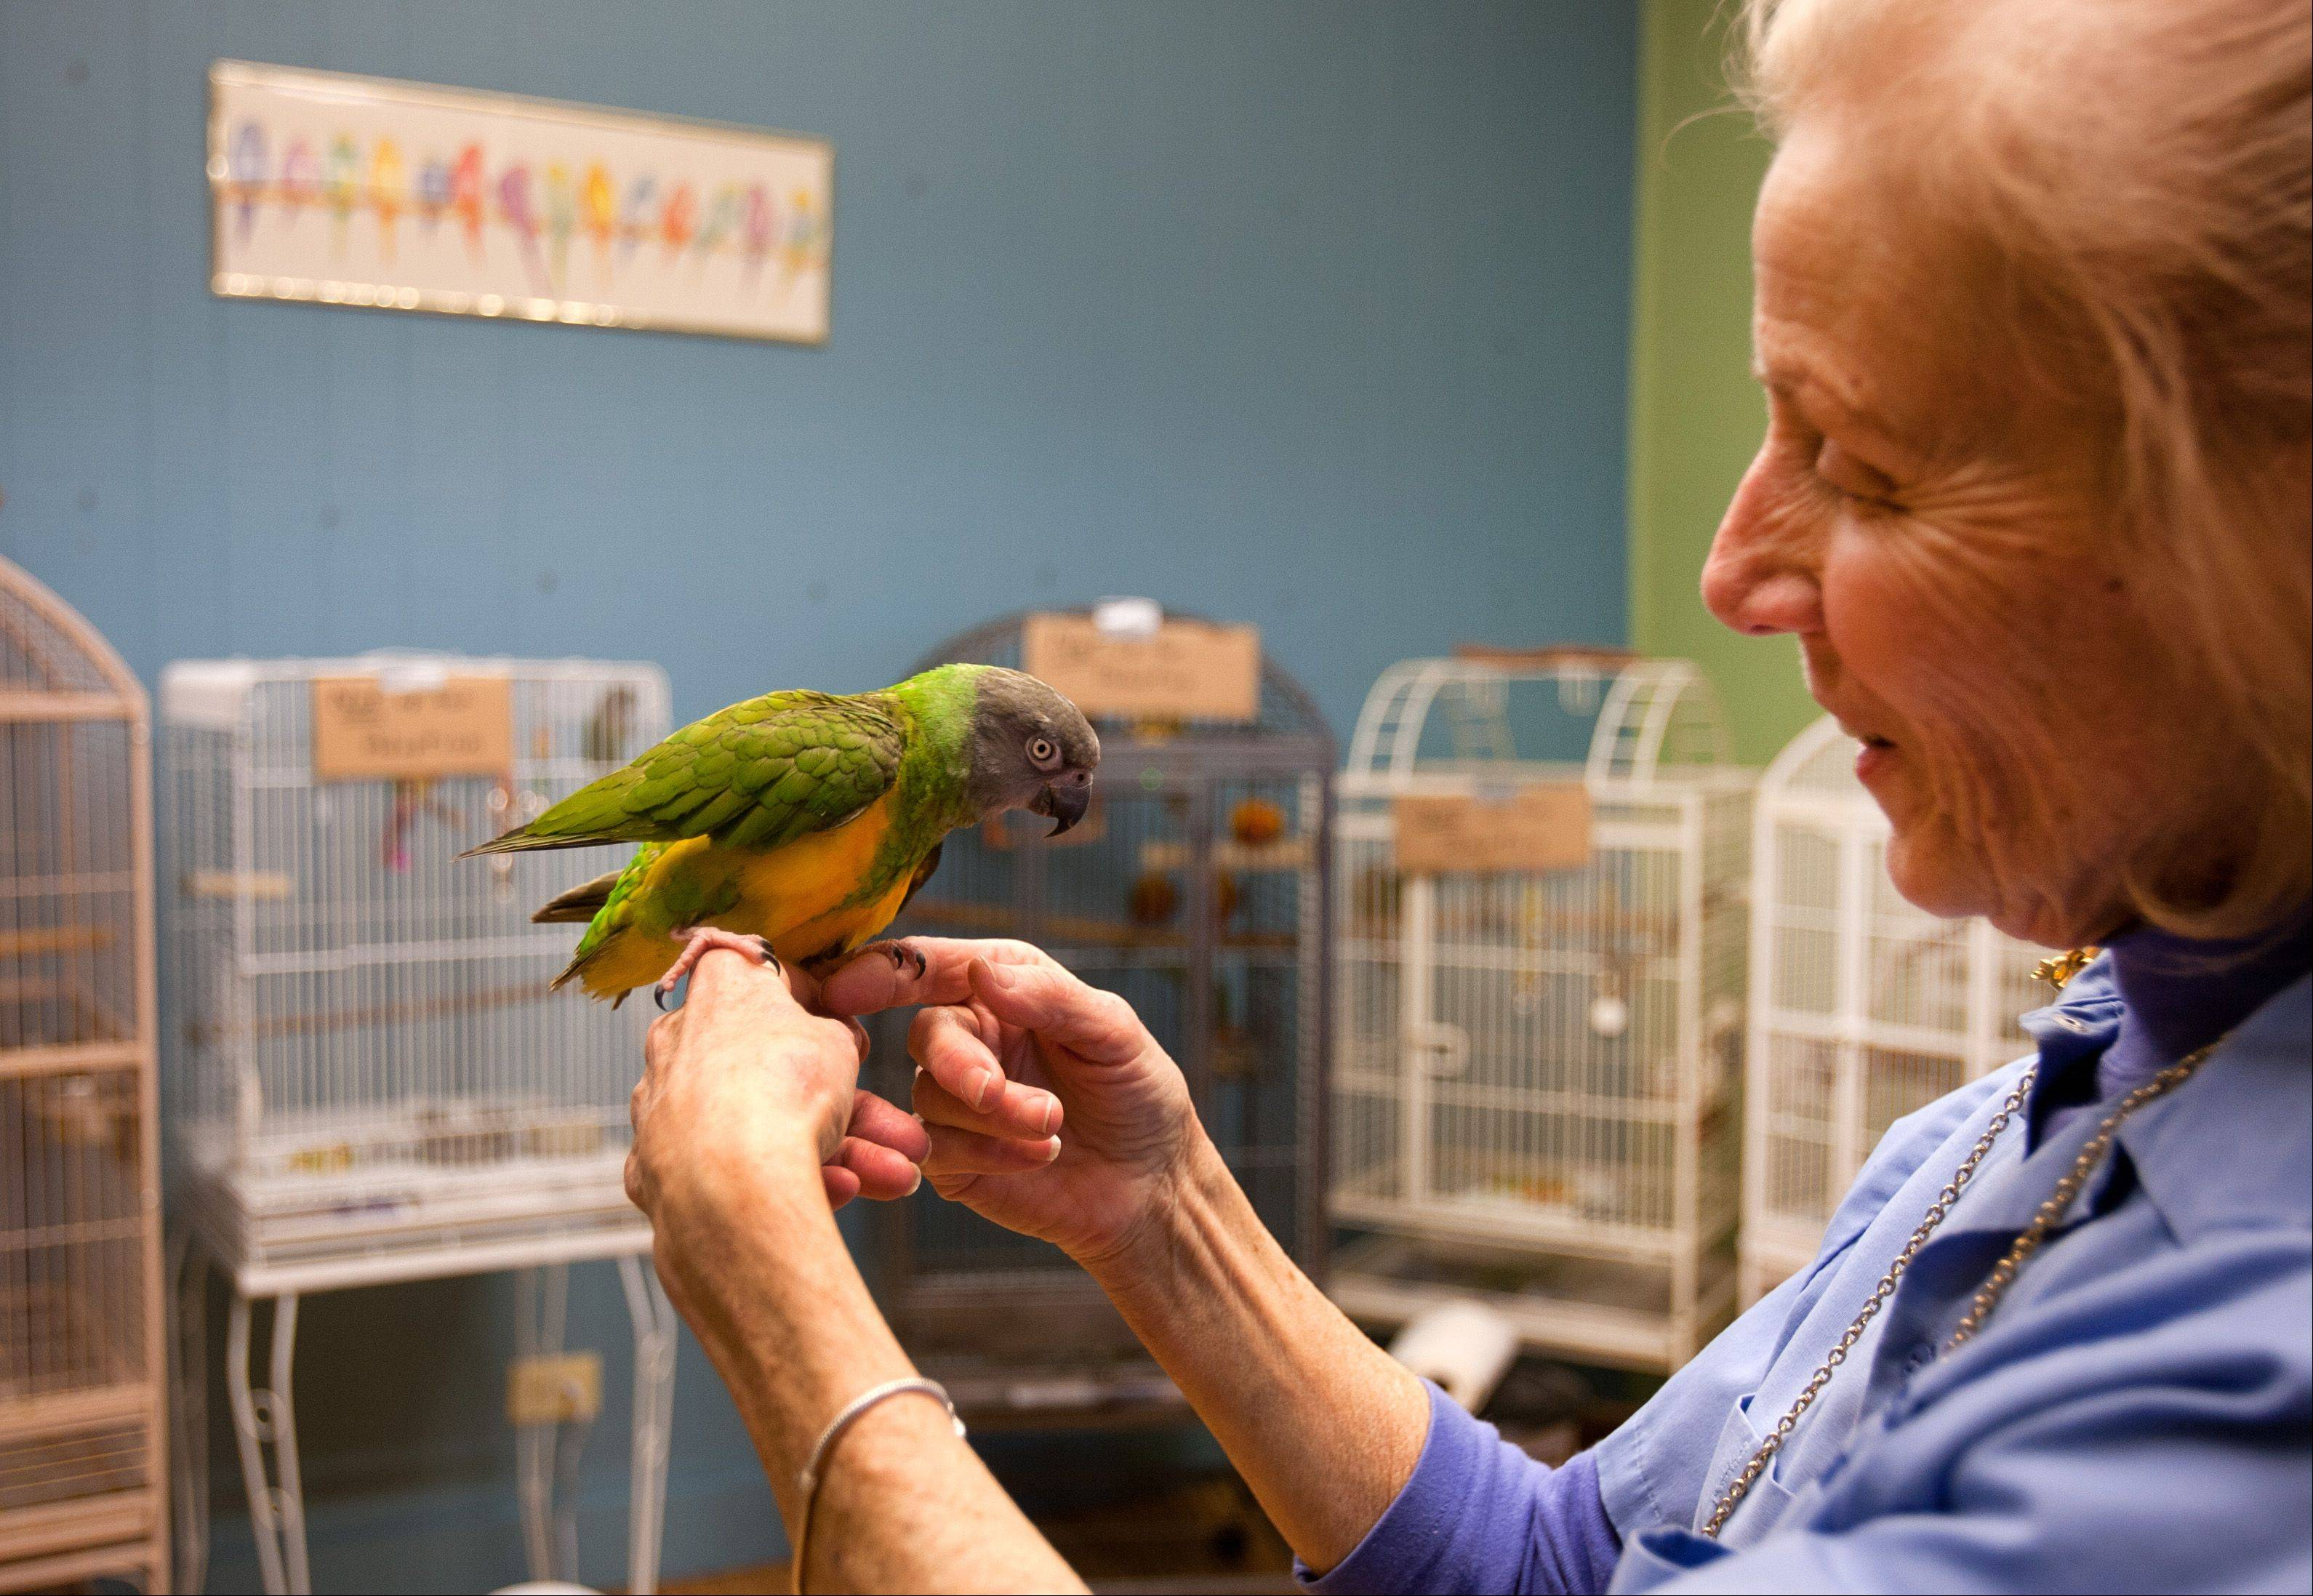 Hundreds of Aurora man's birds up for adoption